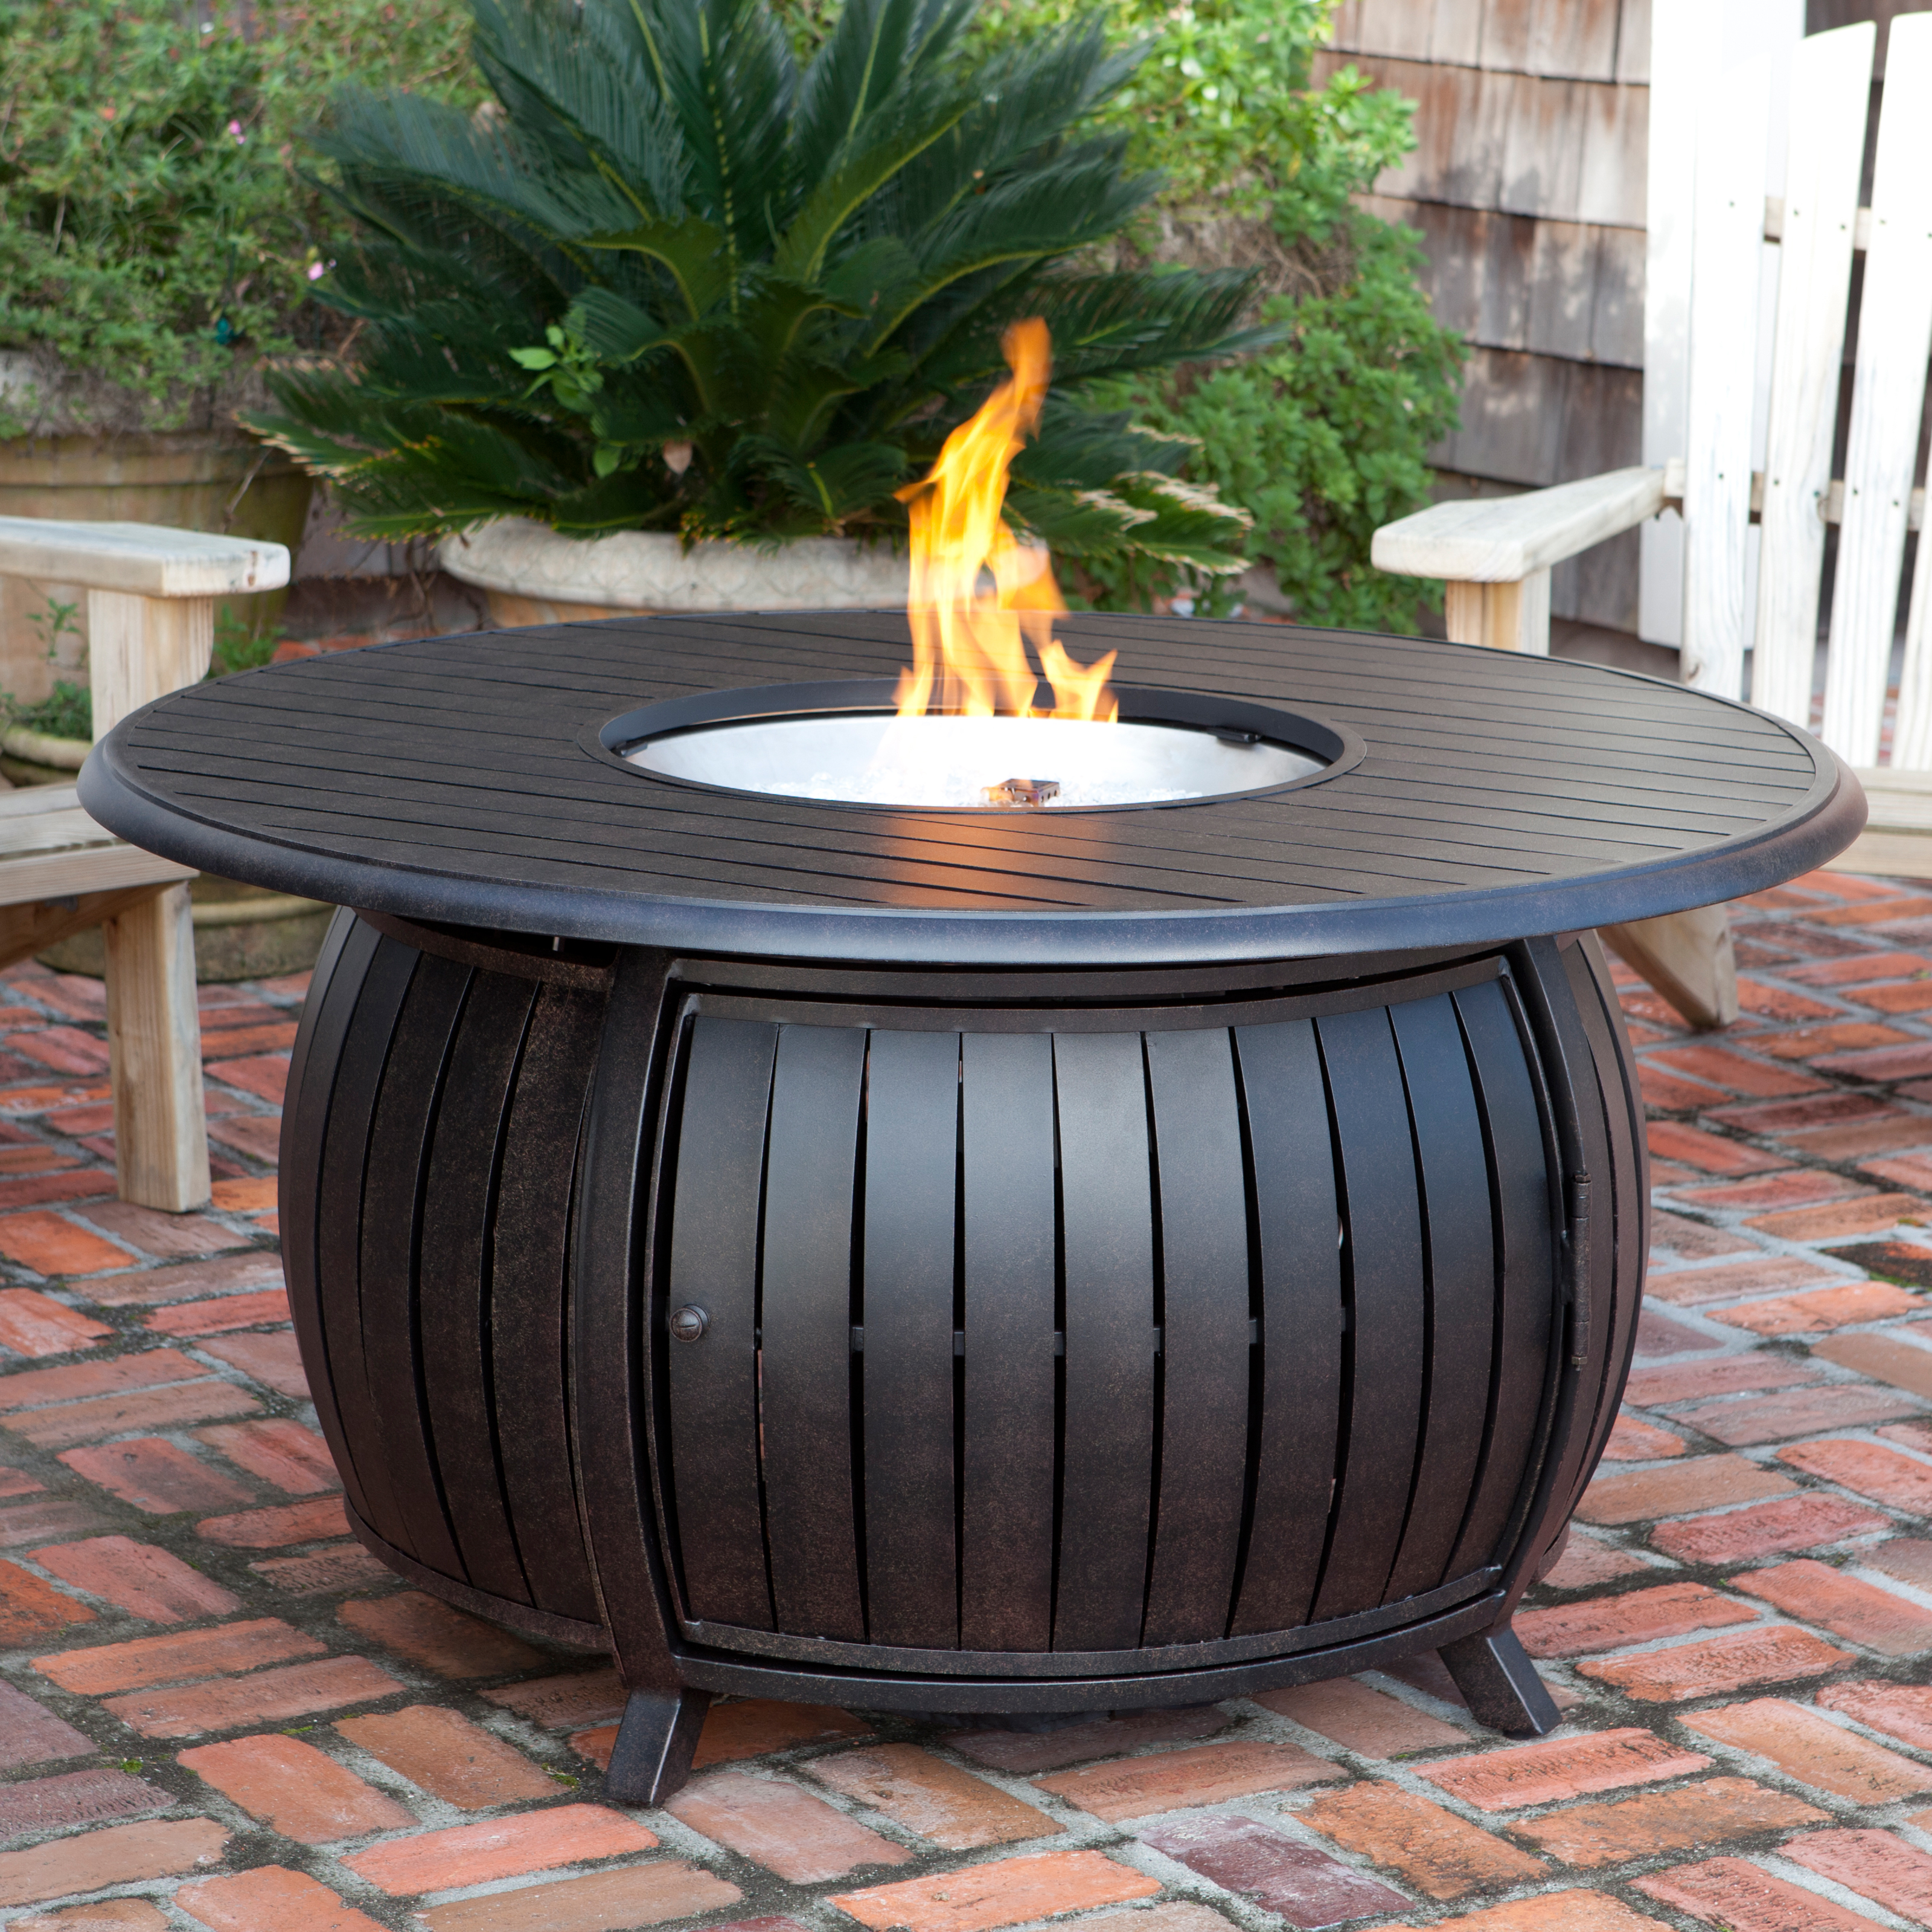 Fire Sense Round Fire Pit Table with Cover